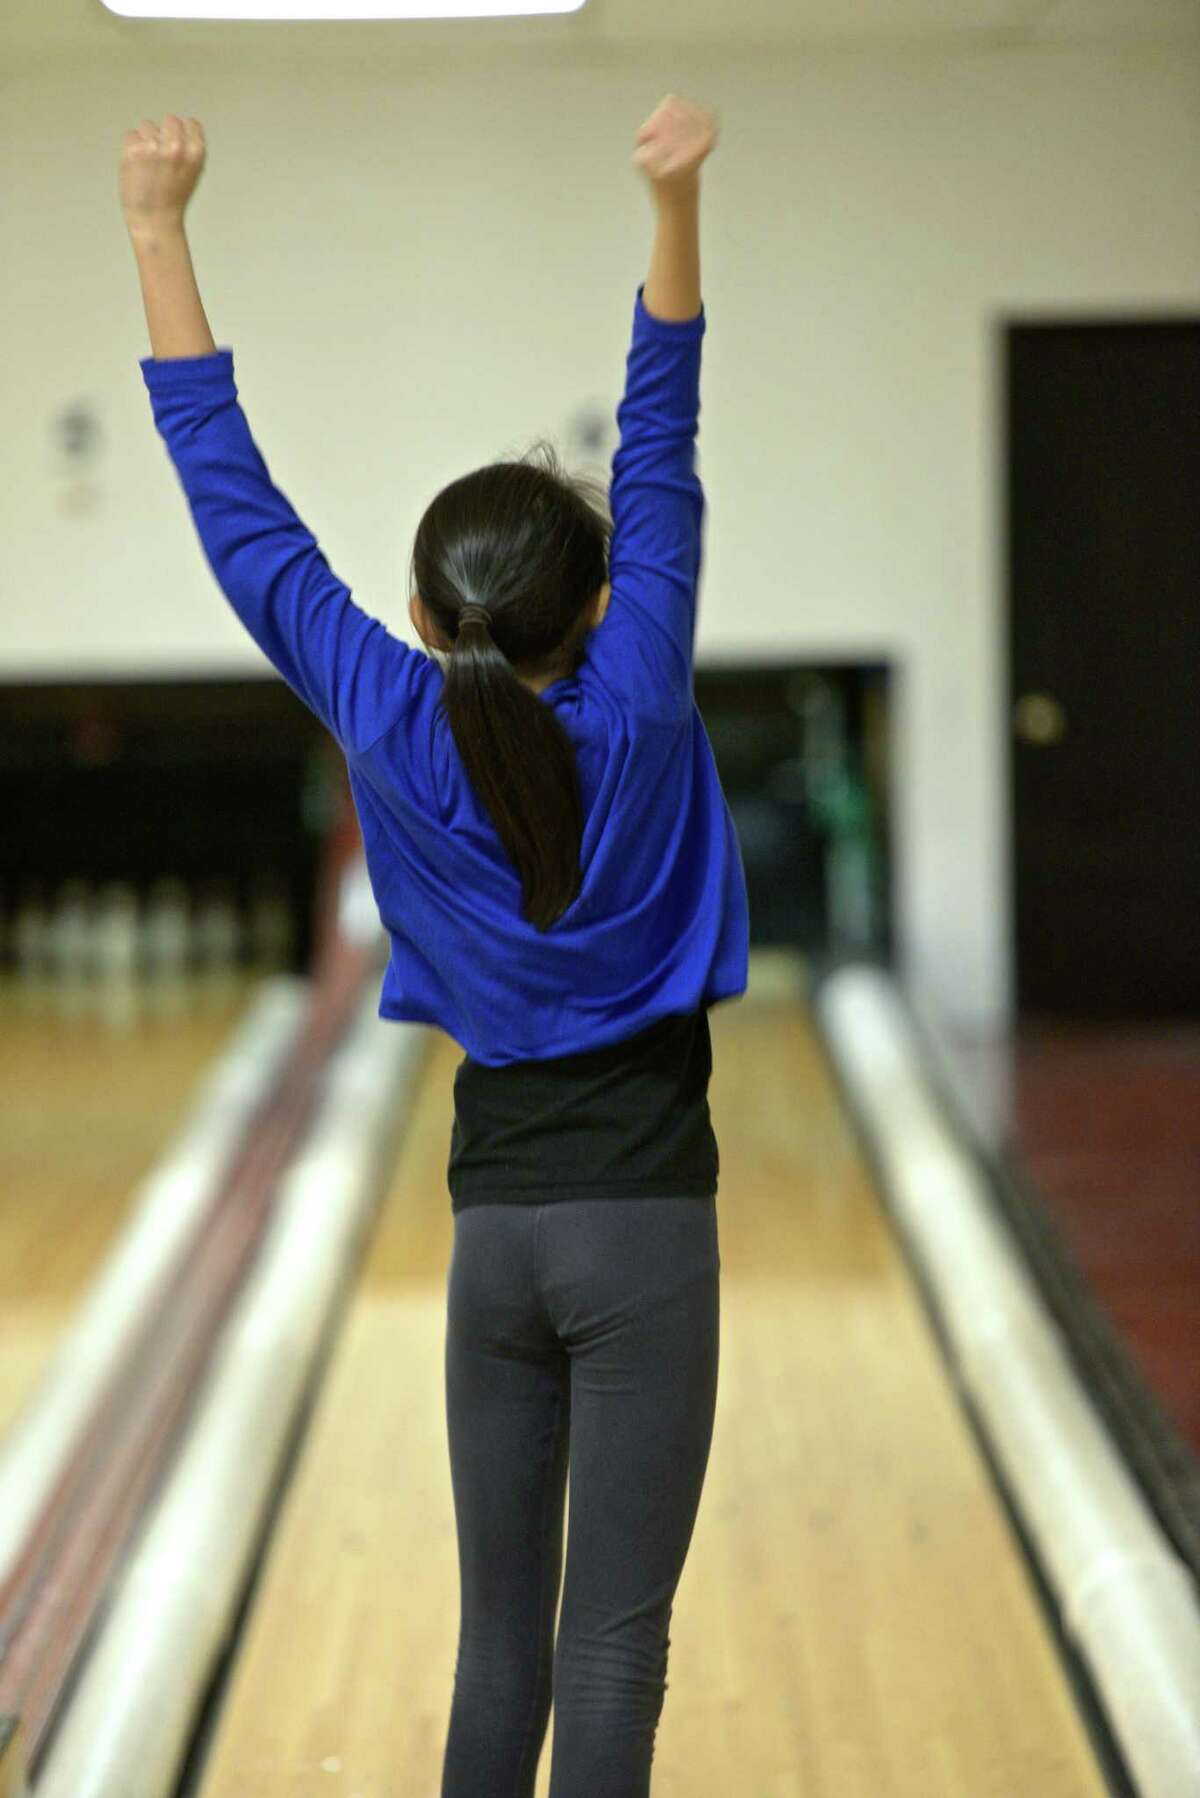 Grace Woleck, 11, of Bethel, signals she is pleased with her roll while duckpin bowling at Danbury Lanes, on Saturday, December 27, 2014, in Danbury, Conn.